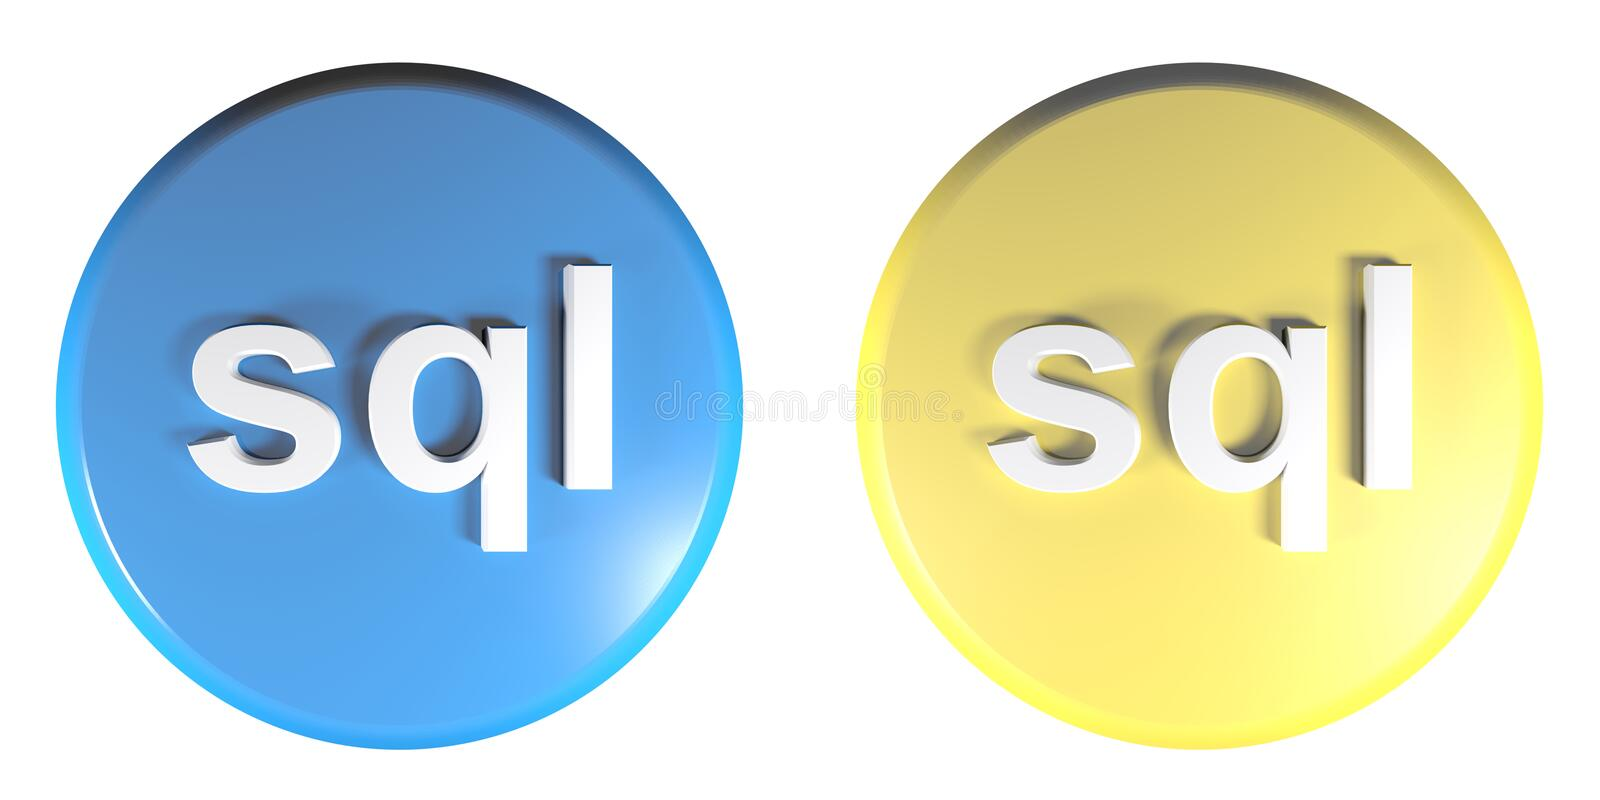 Sql blue and yellow circle push buttons - 3D rendering illustration. Two circle push buttons, blue and yellow, isolated on white background, with the write sql royalty free illustration